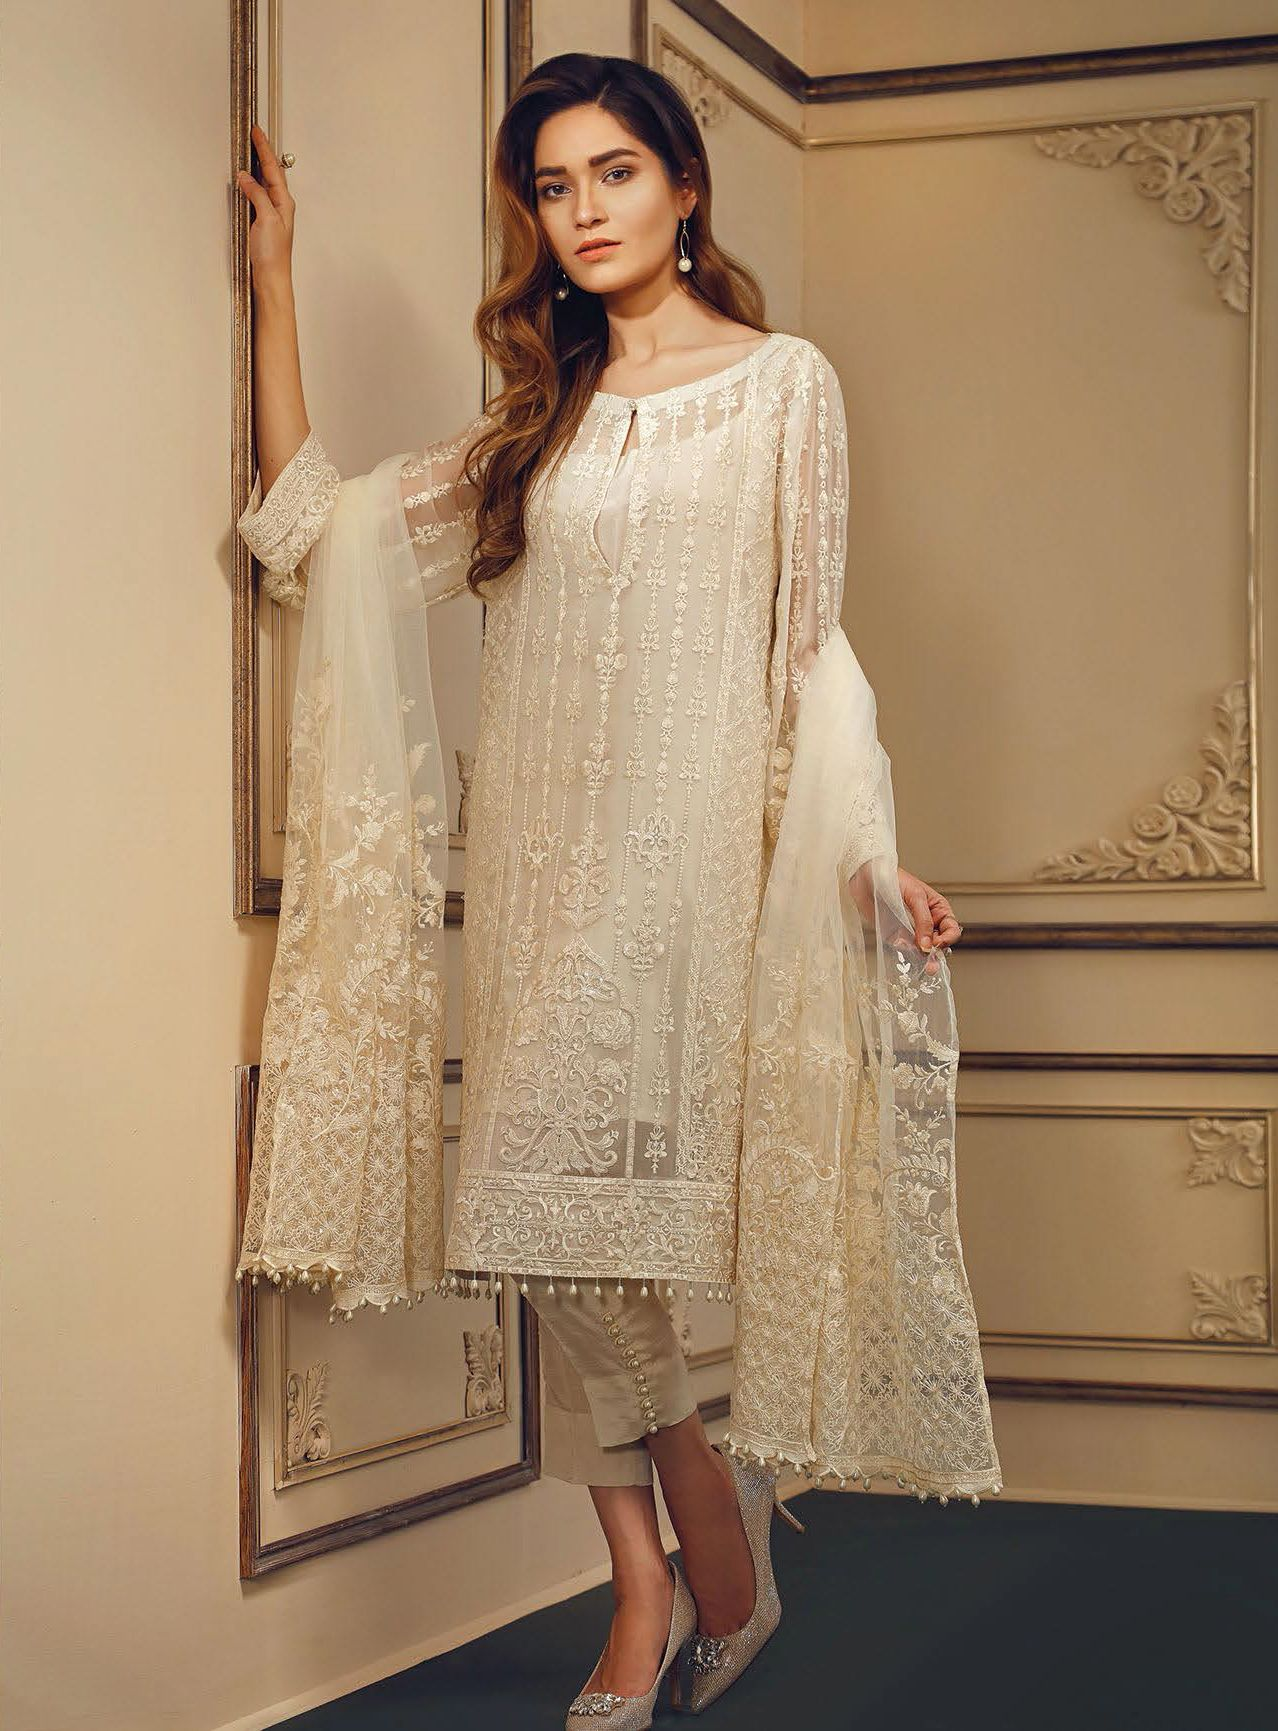 9c21992f35 Buy Now Baroque Chantelle Embroidered Chiffon Collection Vol 3 In UK at  Style Mantra only £89 Only